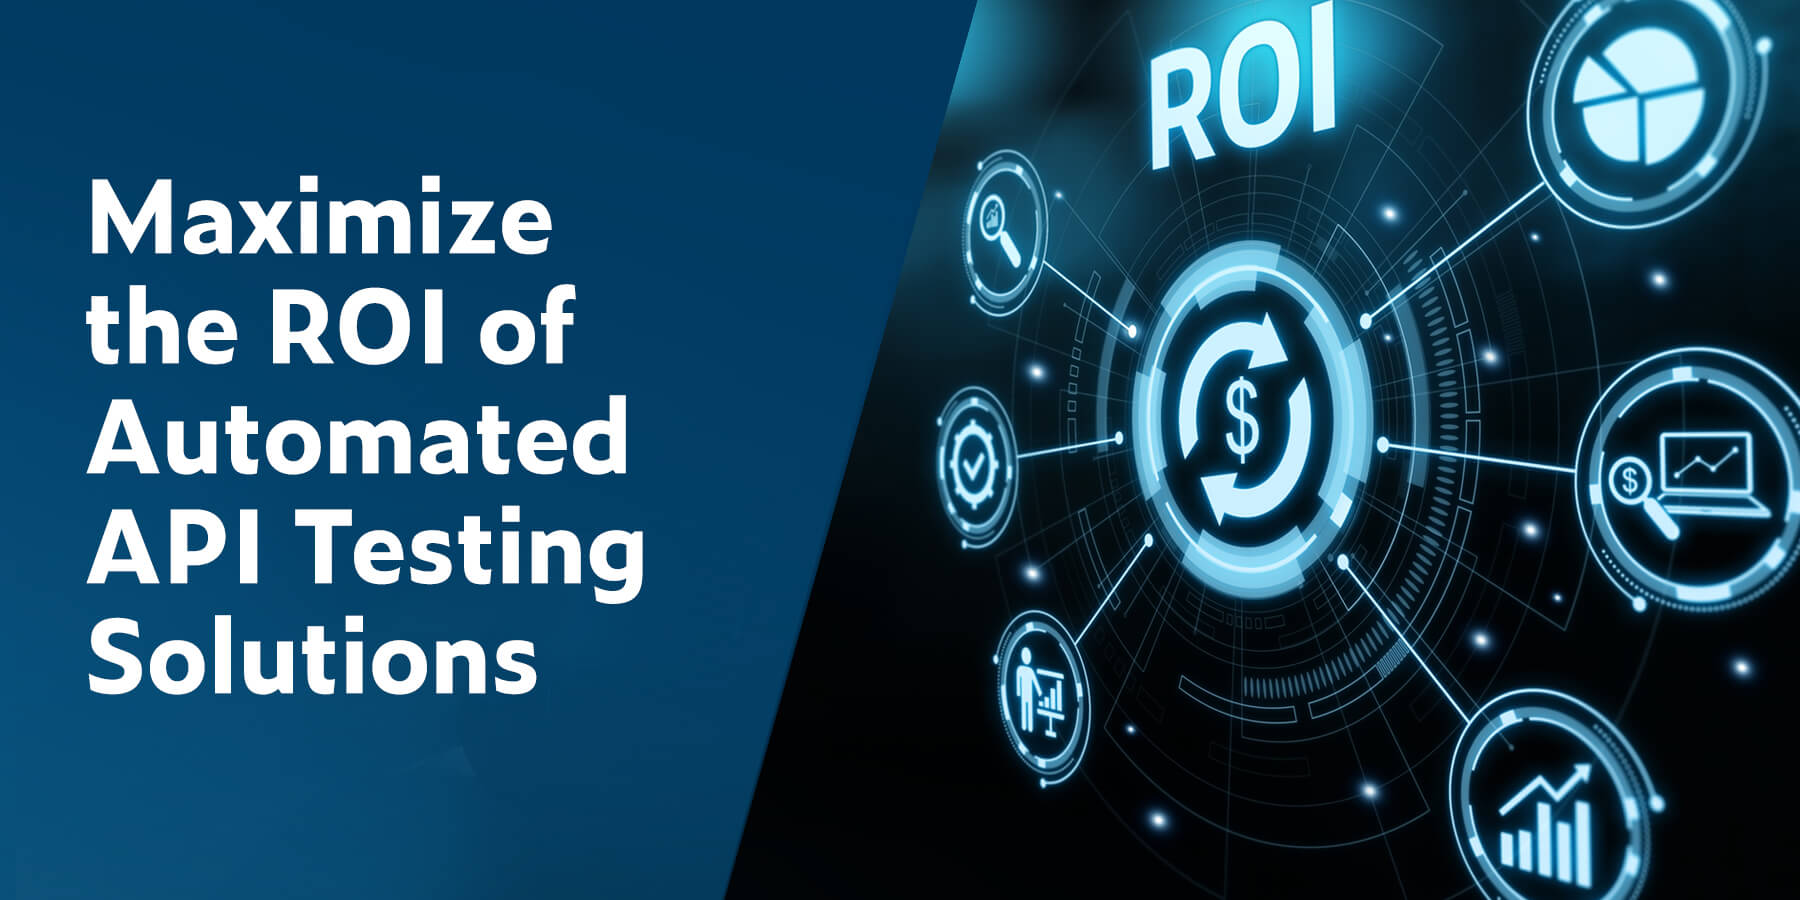 Maximize the ROI of Automated API Testing Solutions